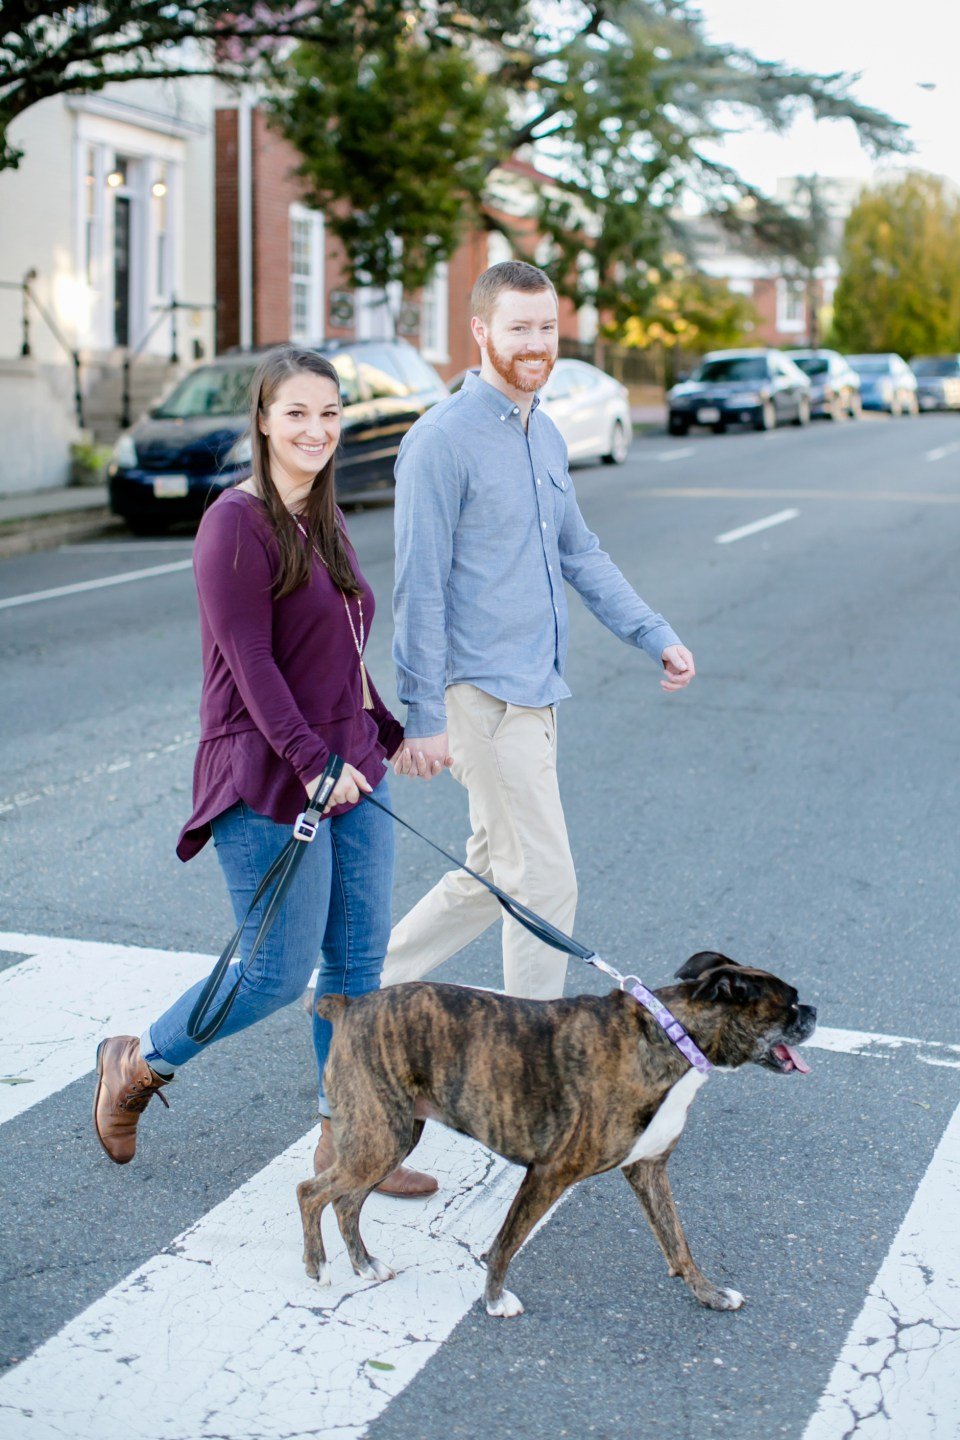 18downtown-fredericksburg-virginia-engagement-session-sarah-and-russell-1033